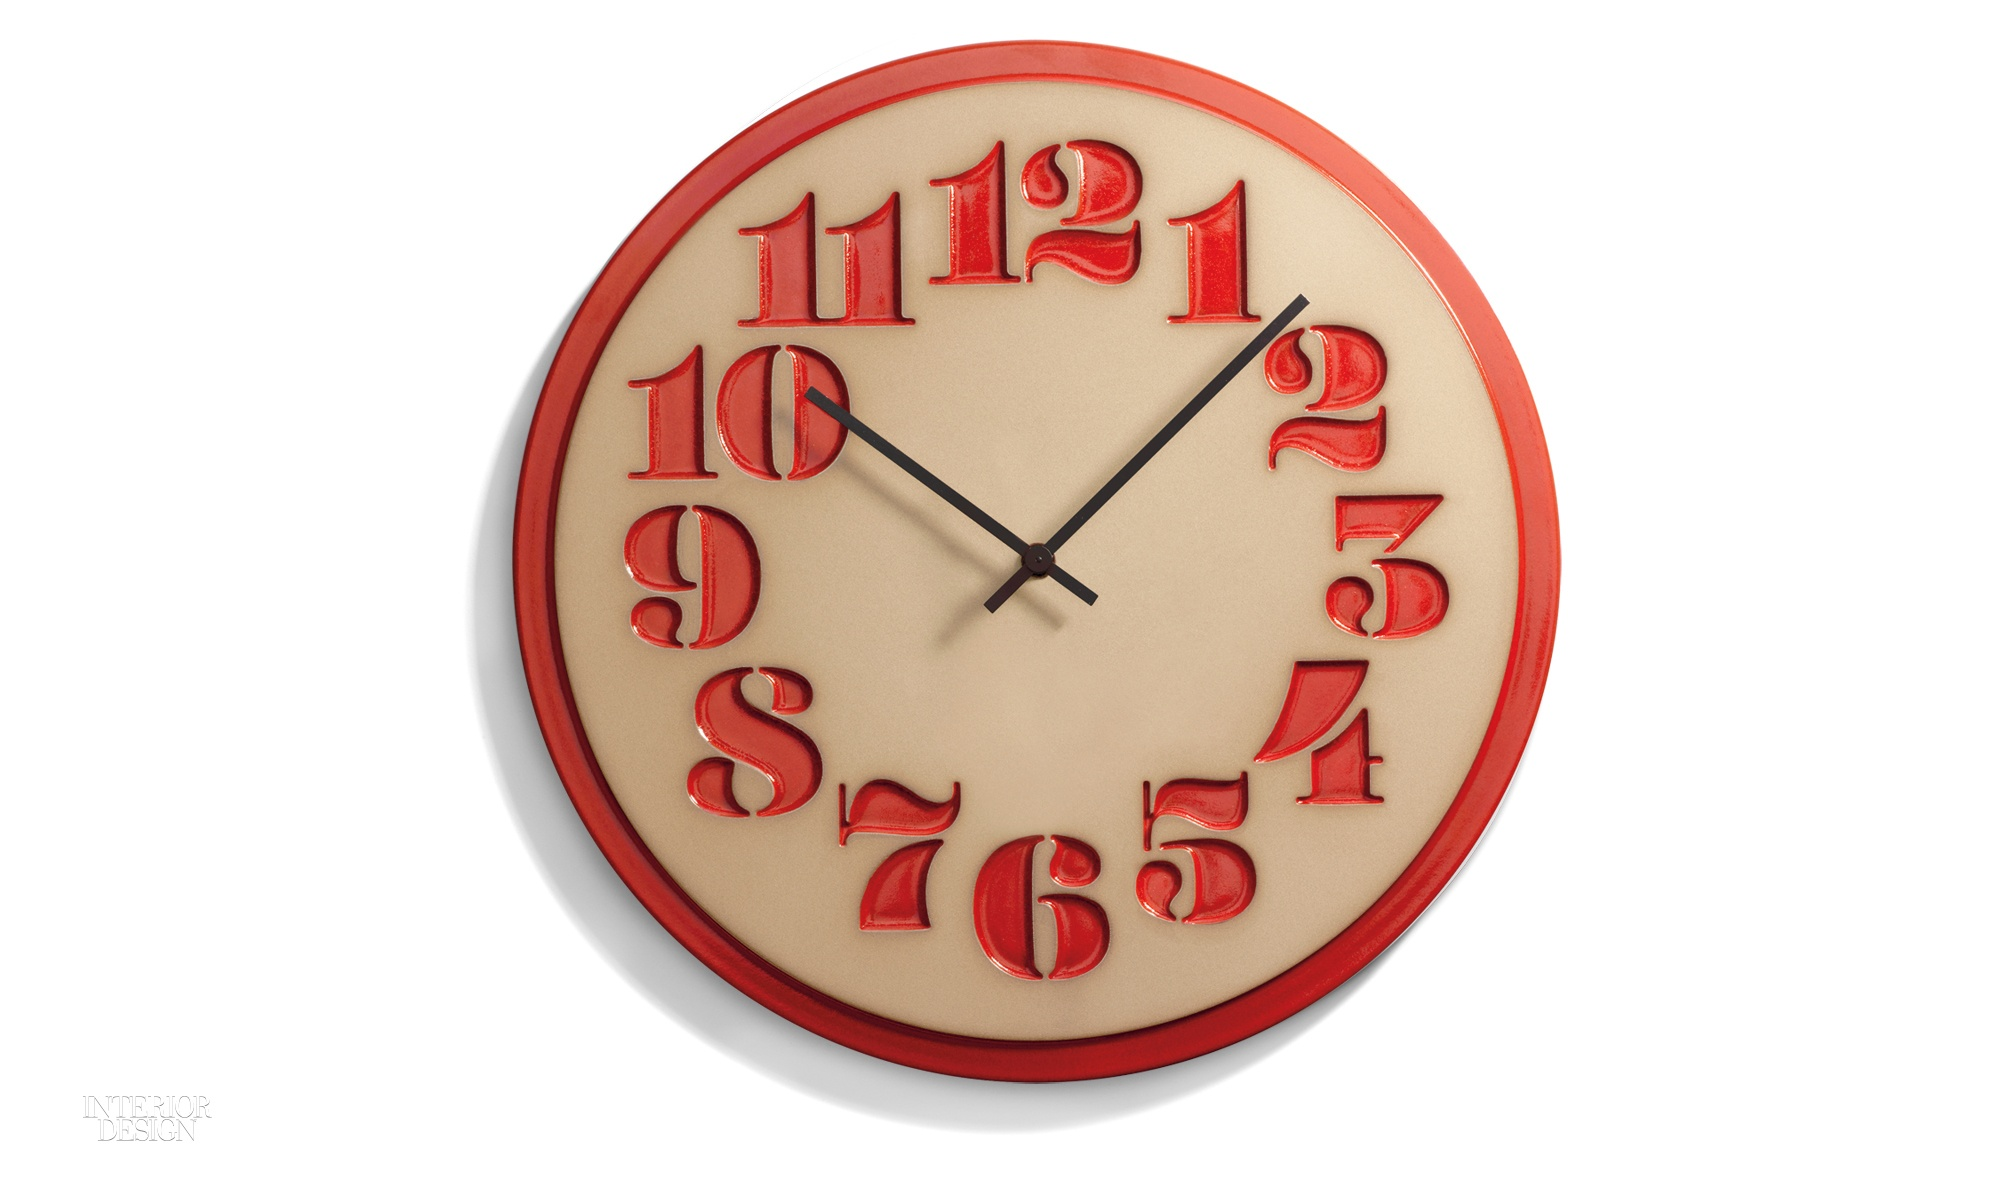 30 Inch Clock Stencil: House Industries Toasts 25 Years With New Book And